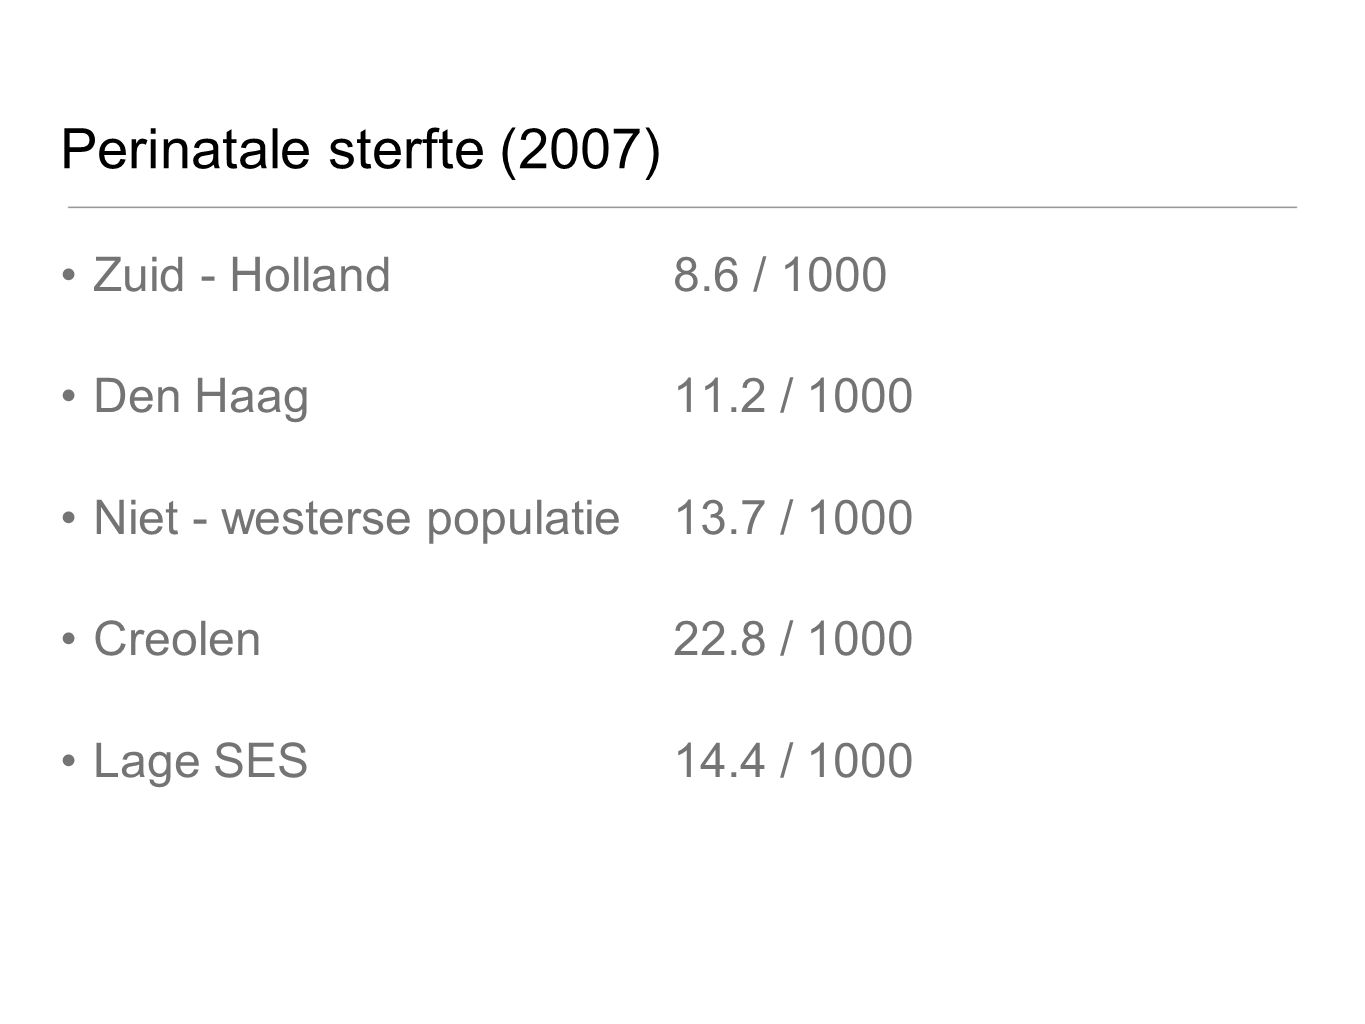 Perinatale sterfte (2007) Zuid - Holland 8.6 / 1000